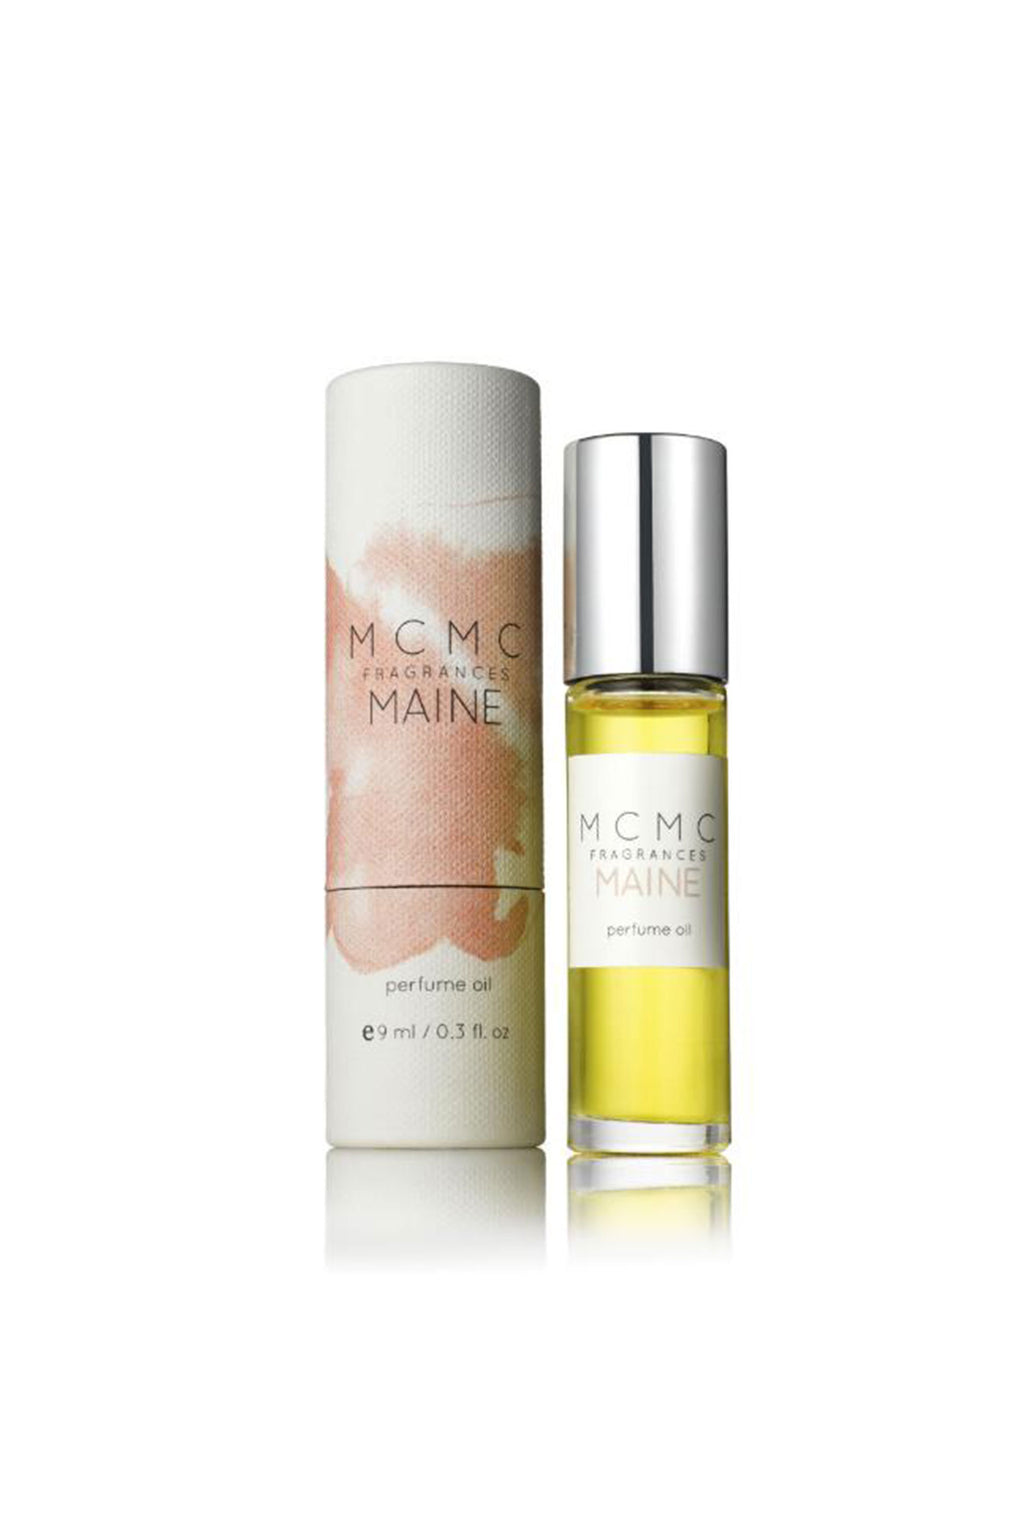 MCMC Fragrance Maine 9ml Perfume Oil